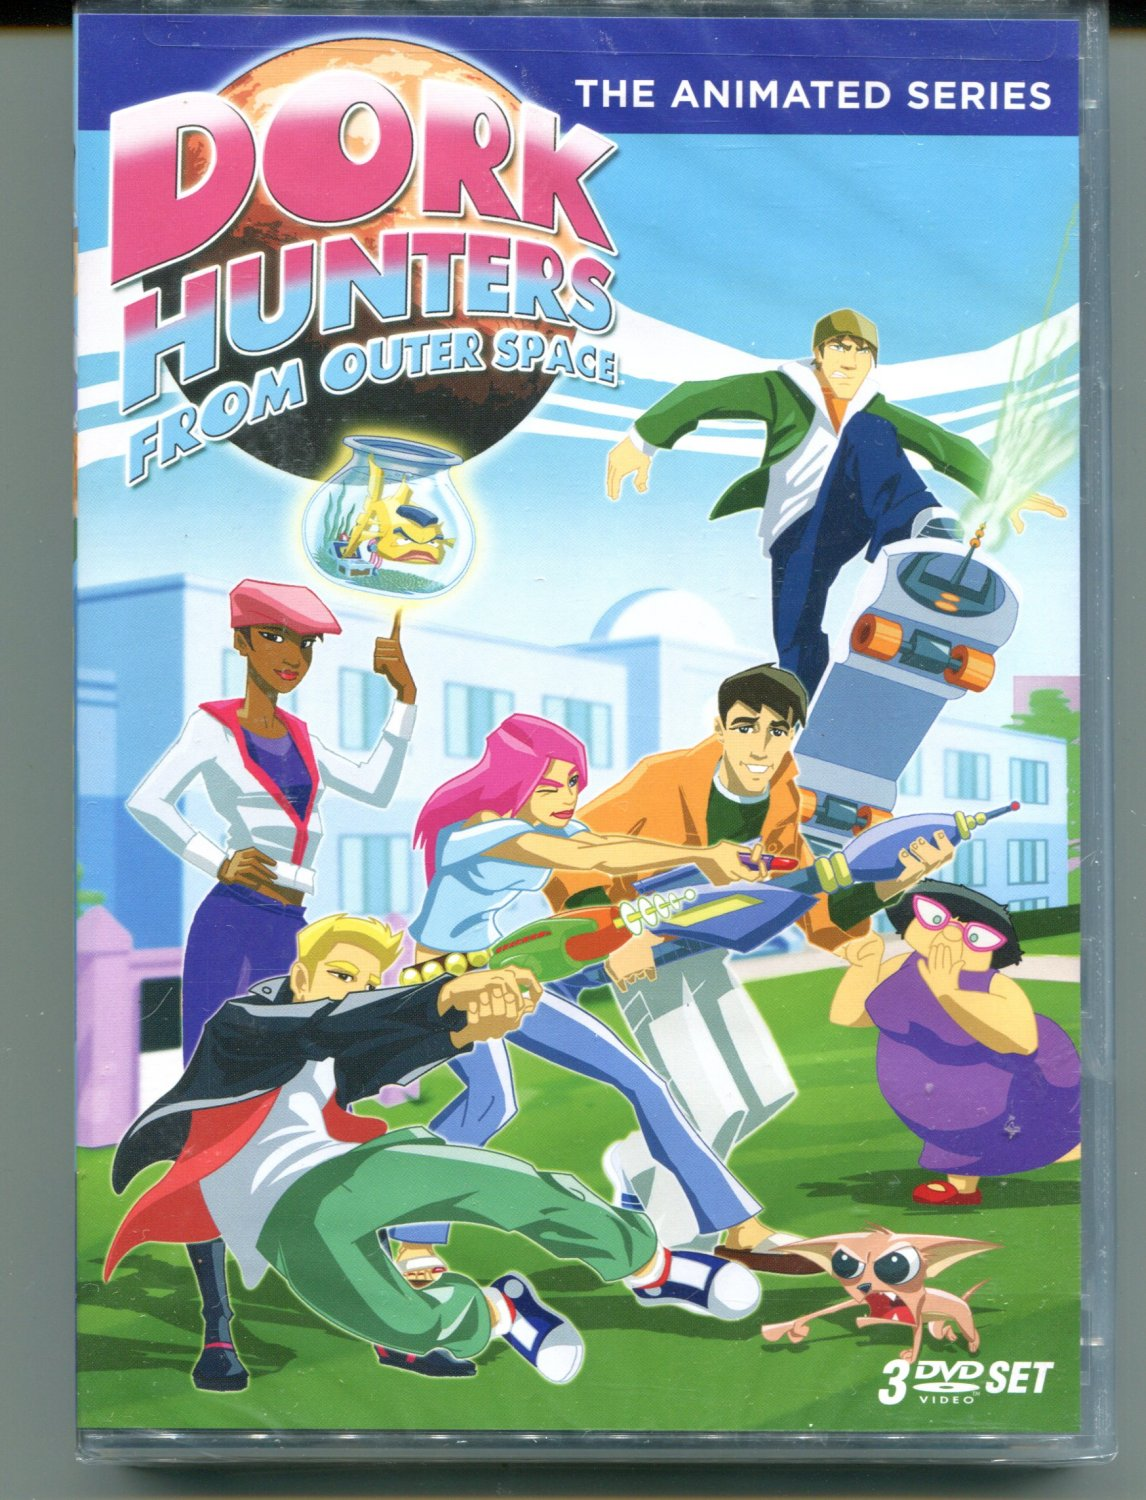 Dork Hunters from Outer Space: The Animated Series (DVD)